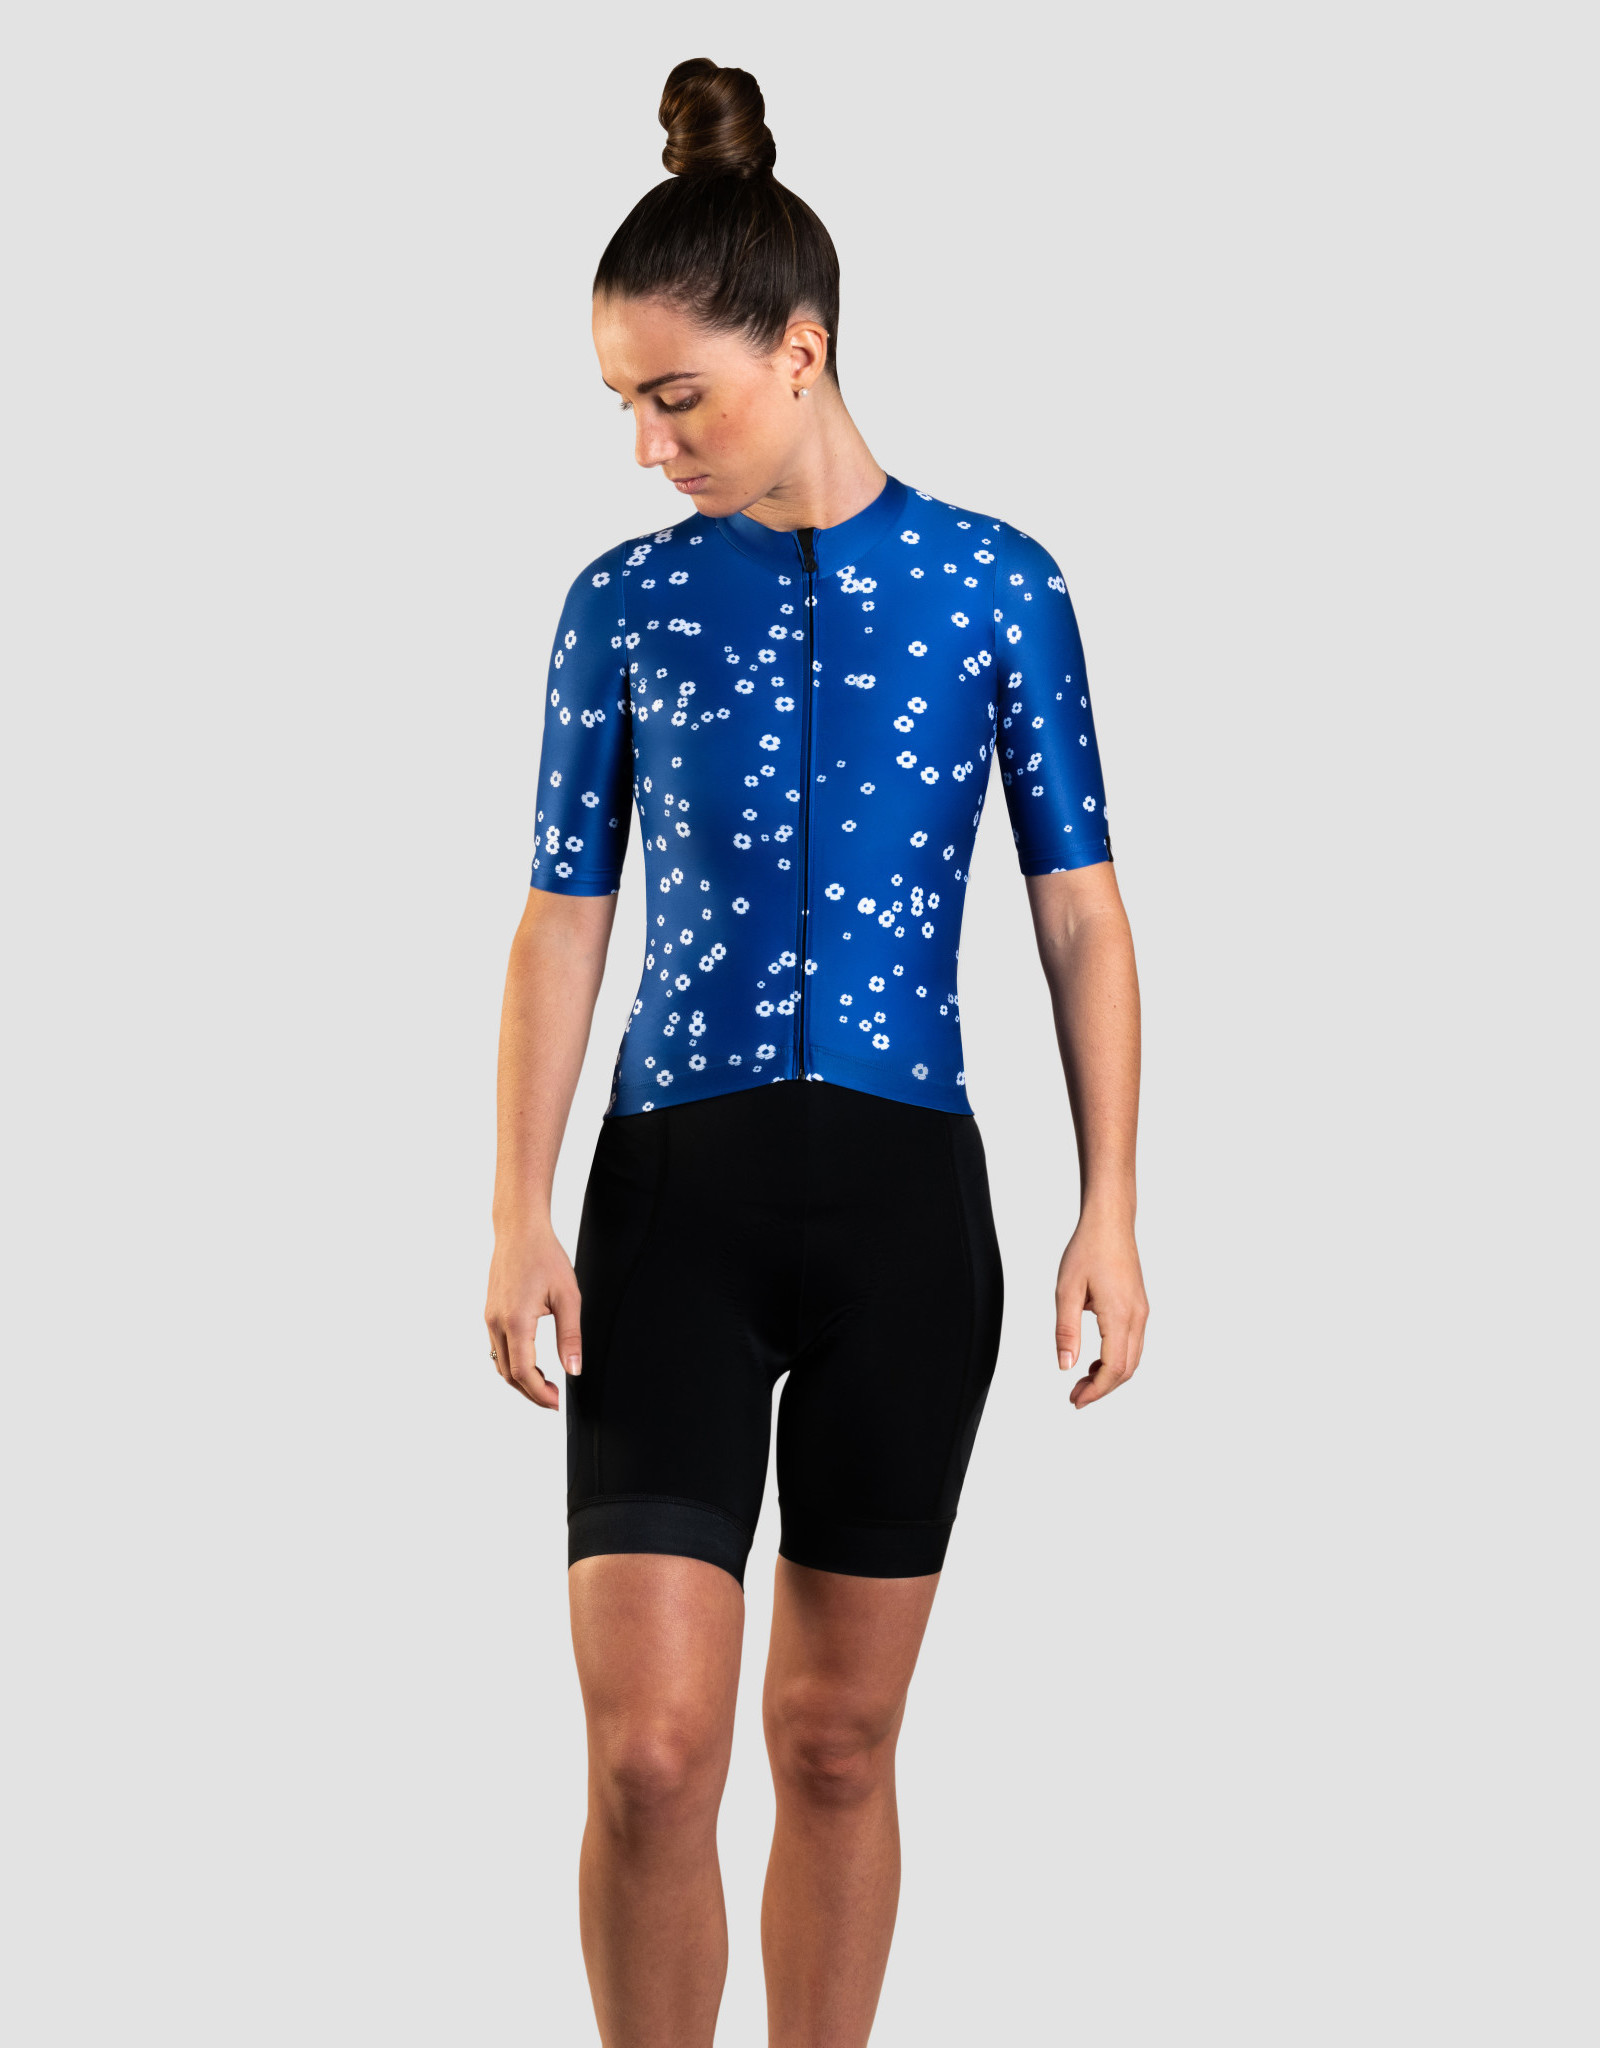 Black Sheep Cycling Women's TEAM SS Jersey - Racing Blue